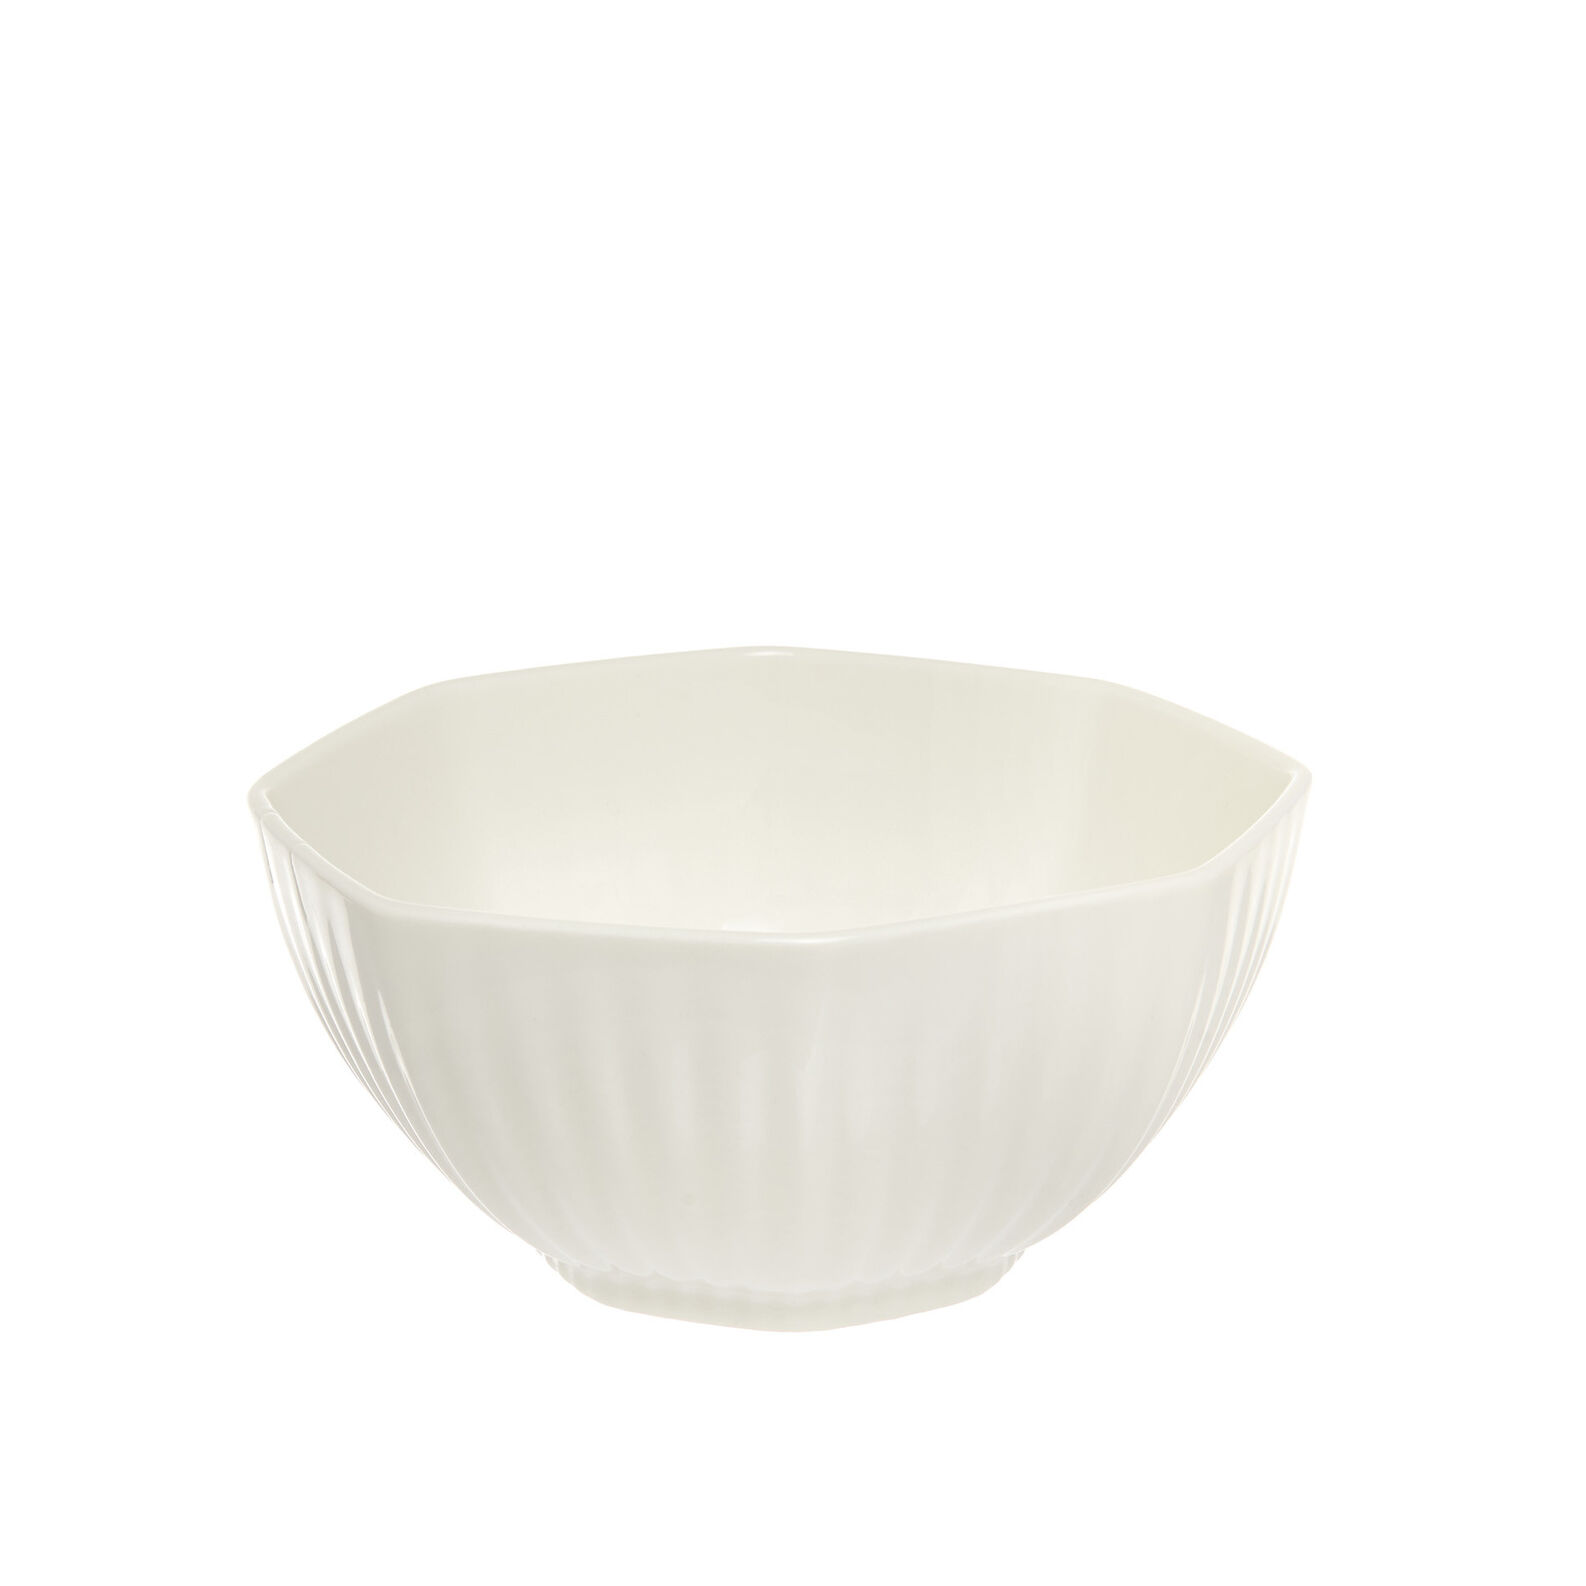 Striped porcelain bowl